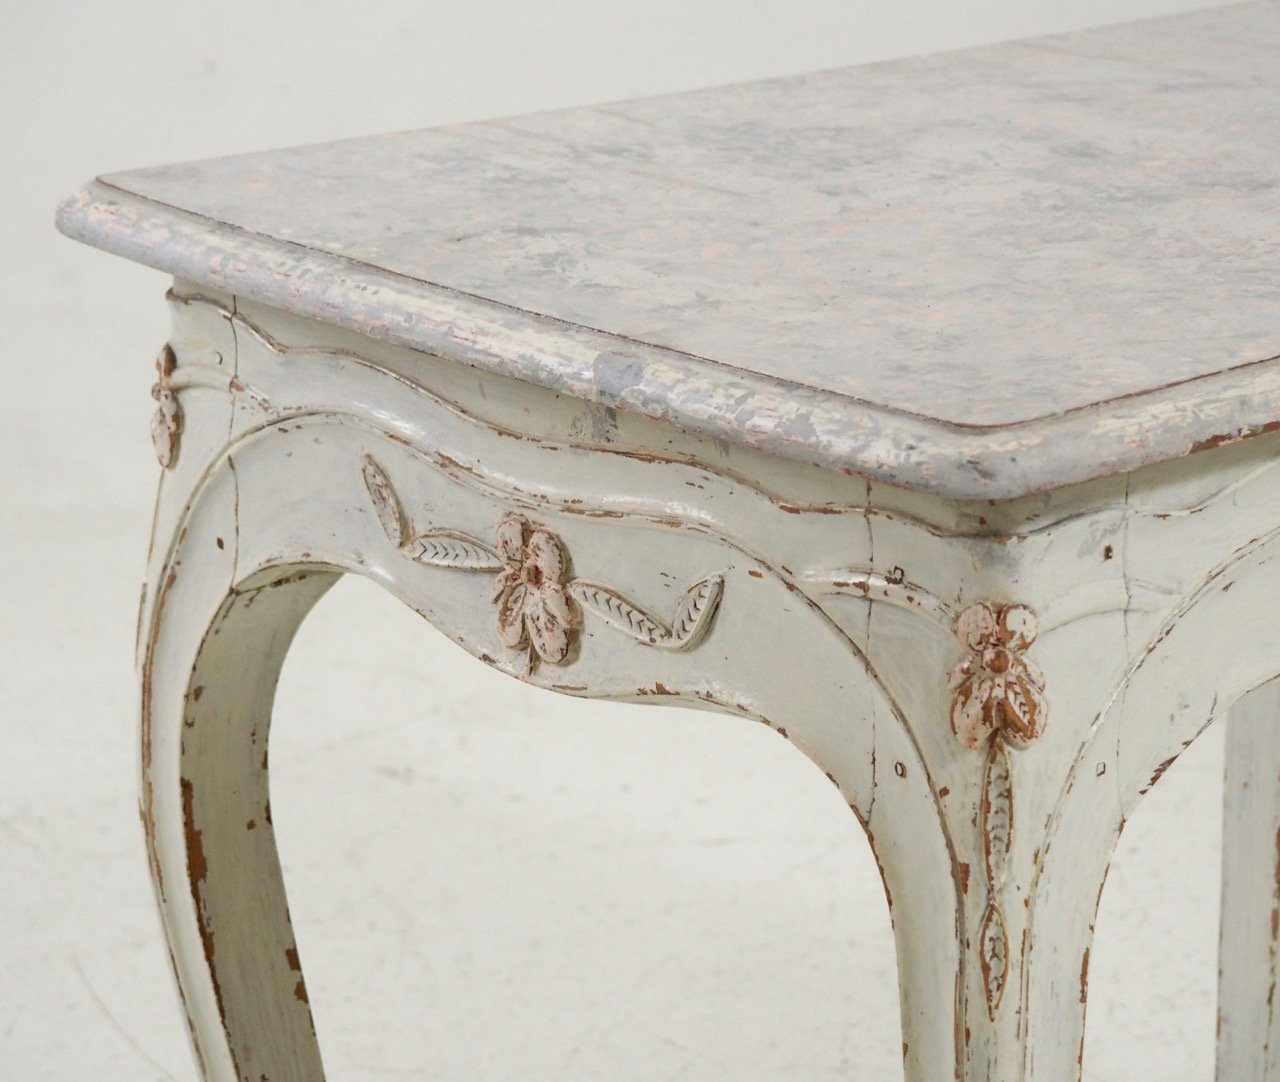 Antique Swedish Freestanding Table with Carvings - Antique Swedish Freestanding Table With Carvings For Sale At Pamono